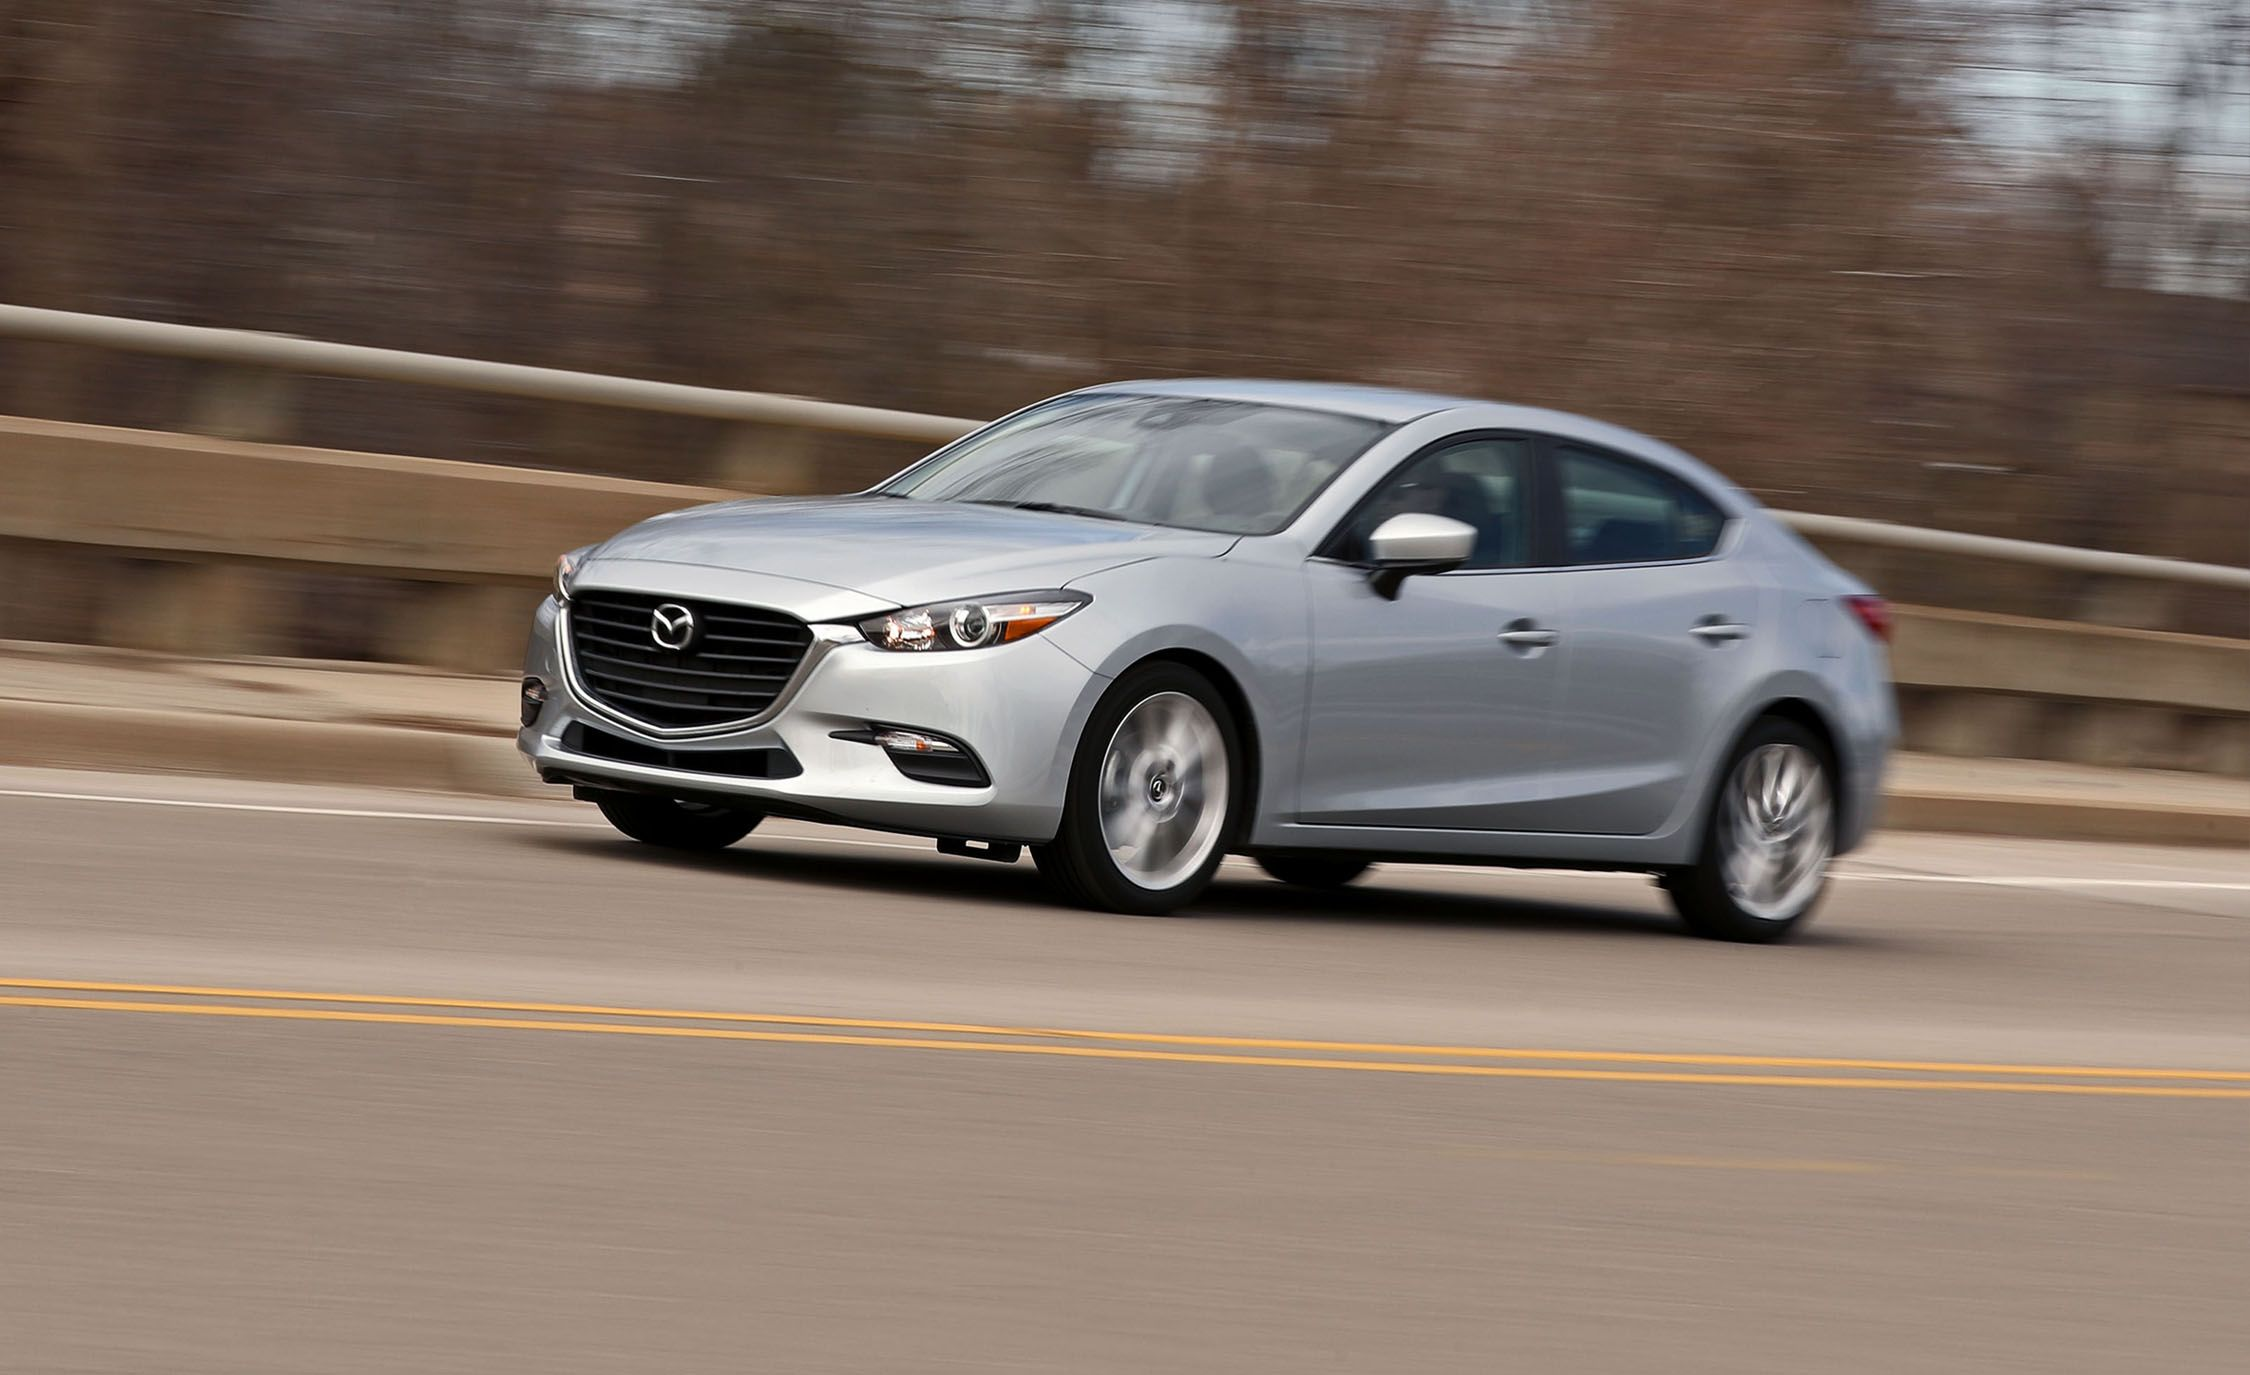 Mazda Mazda 3 Reviews | Mazda Mazda 3 Price, Photos, and Specs | Car and  Driver